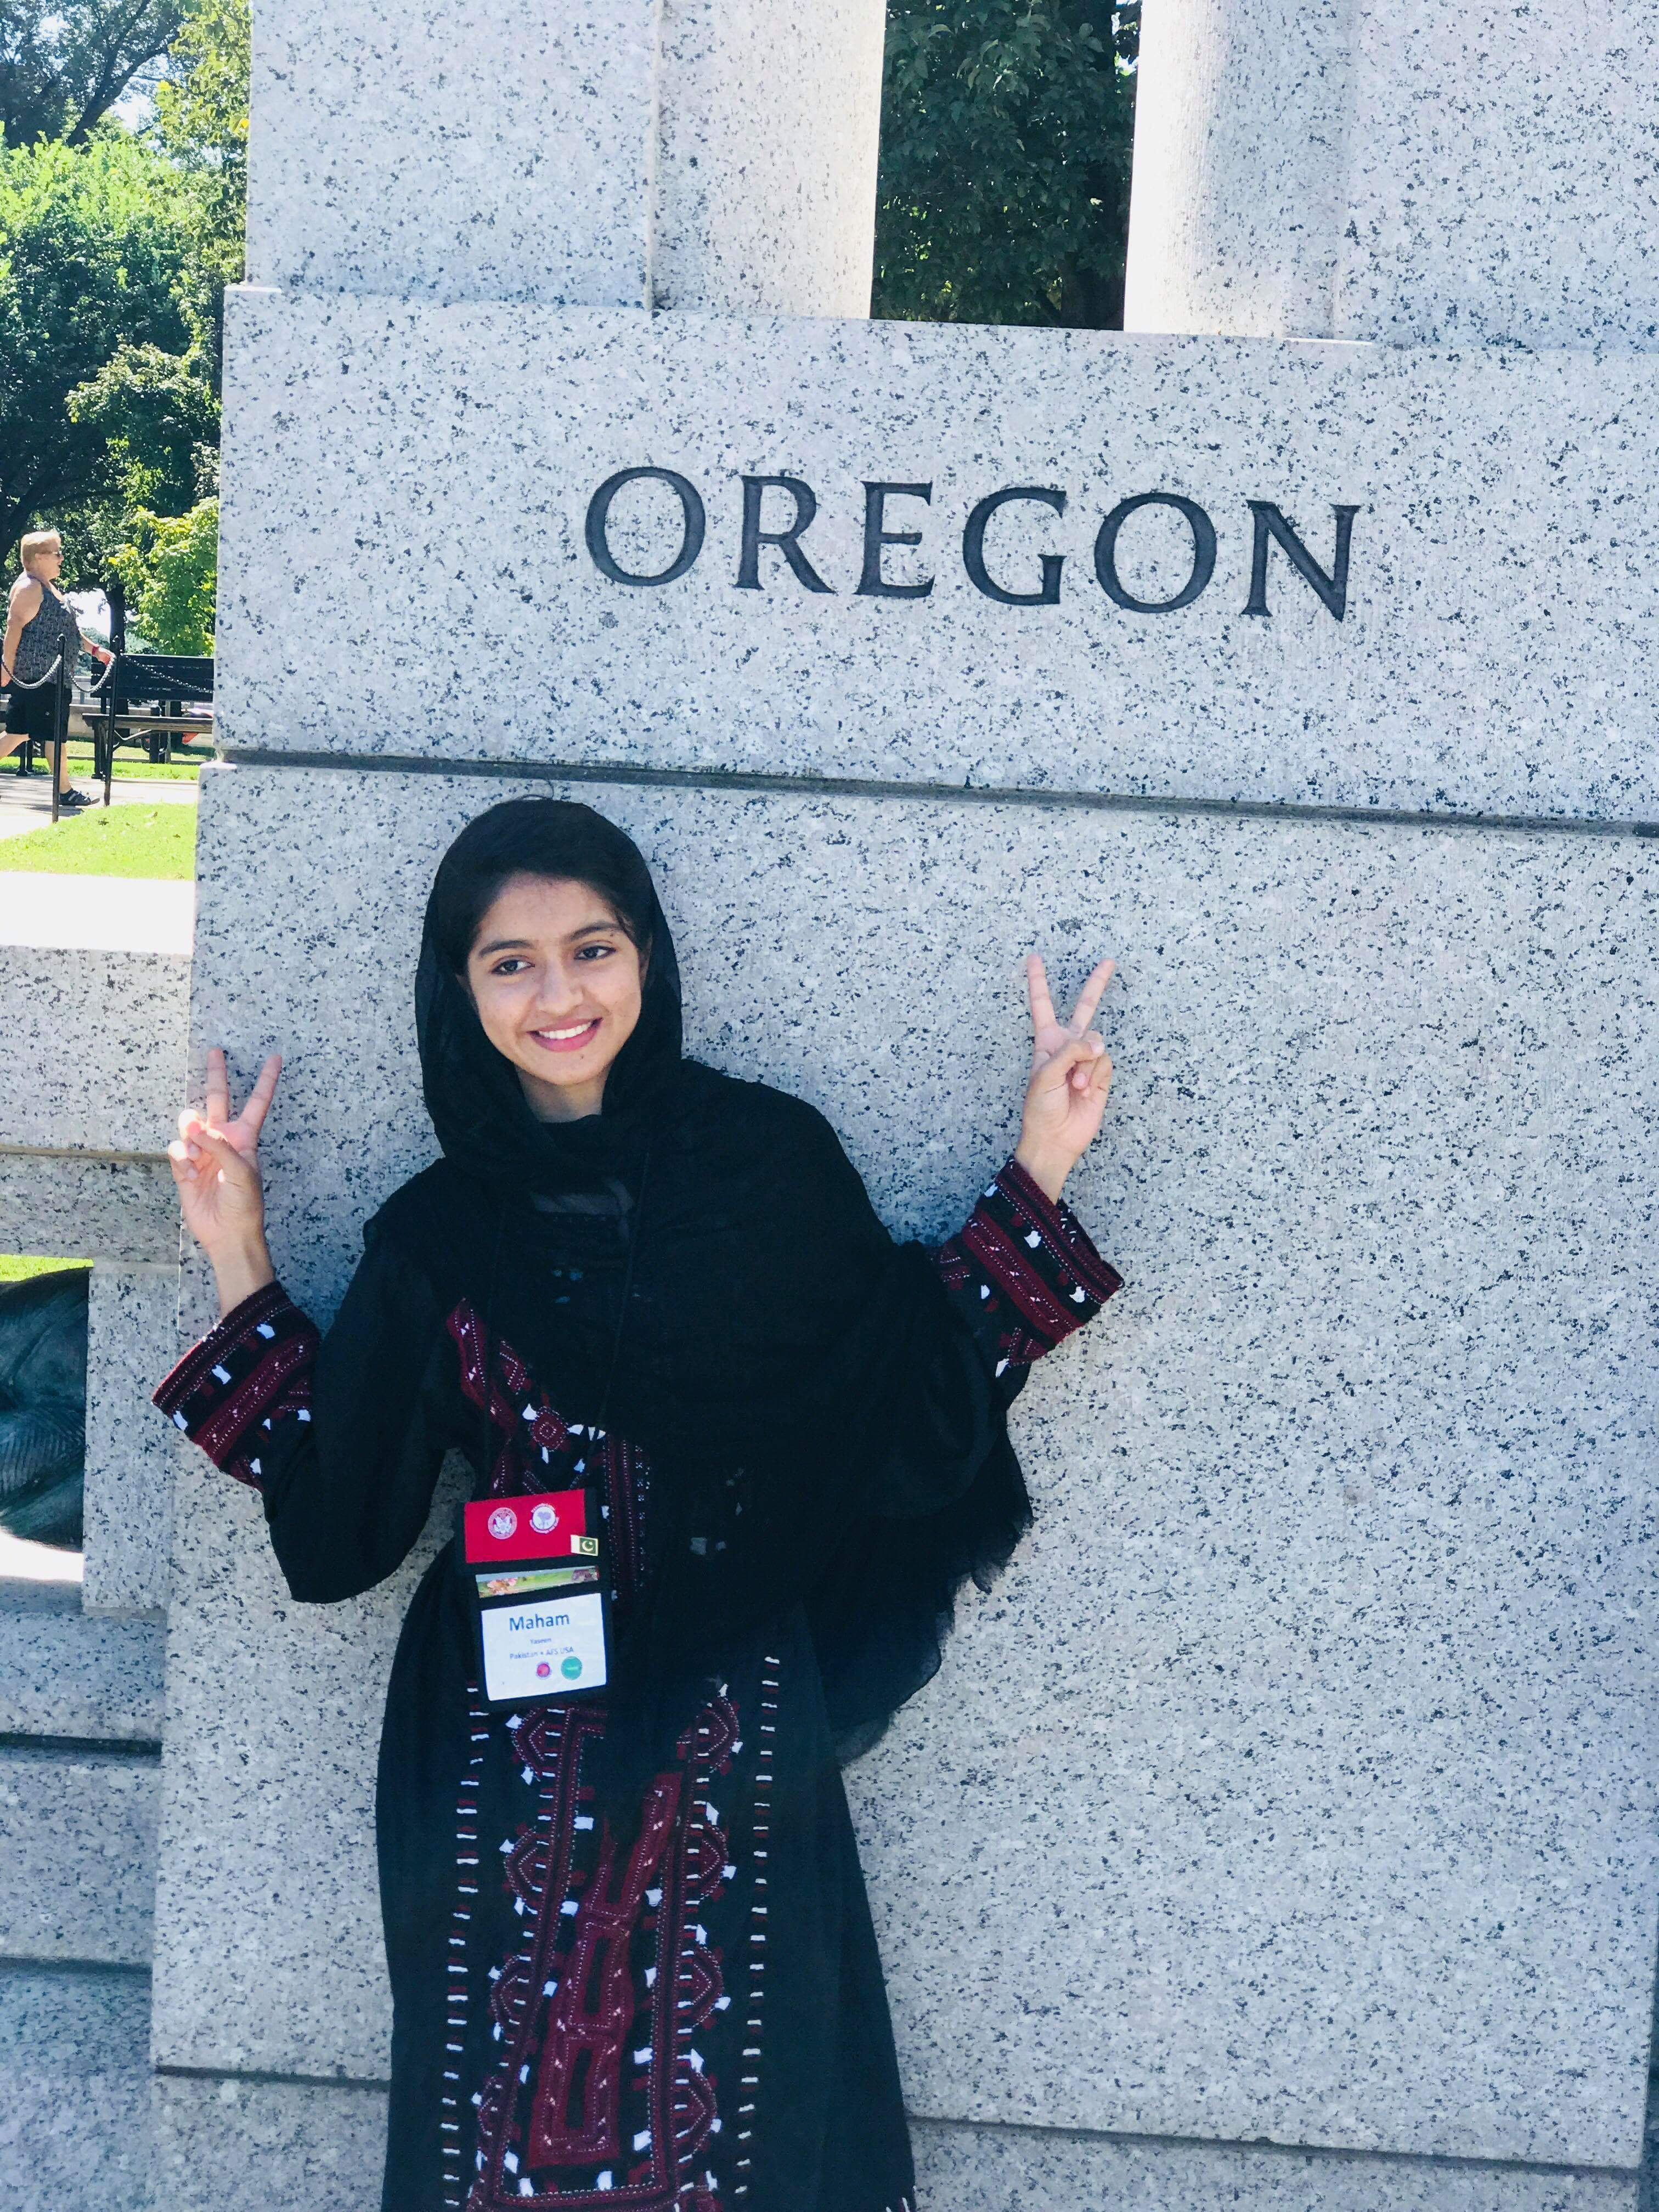 Maham points to Oregon at the WWII memorial.